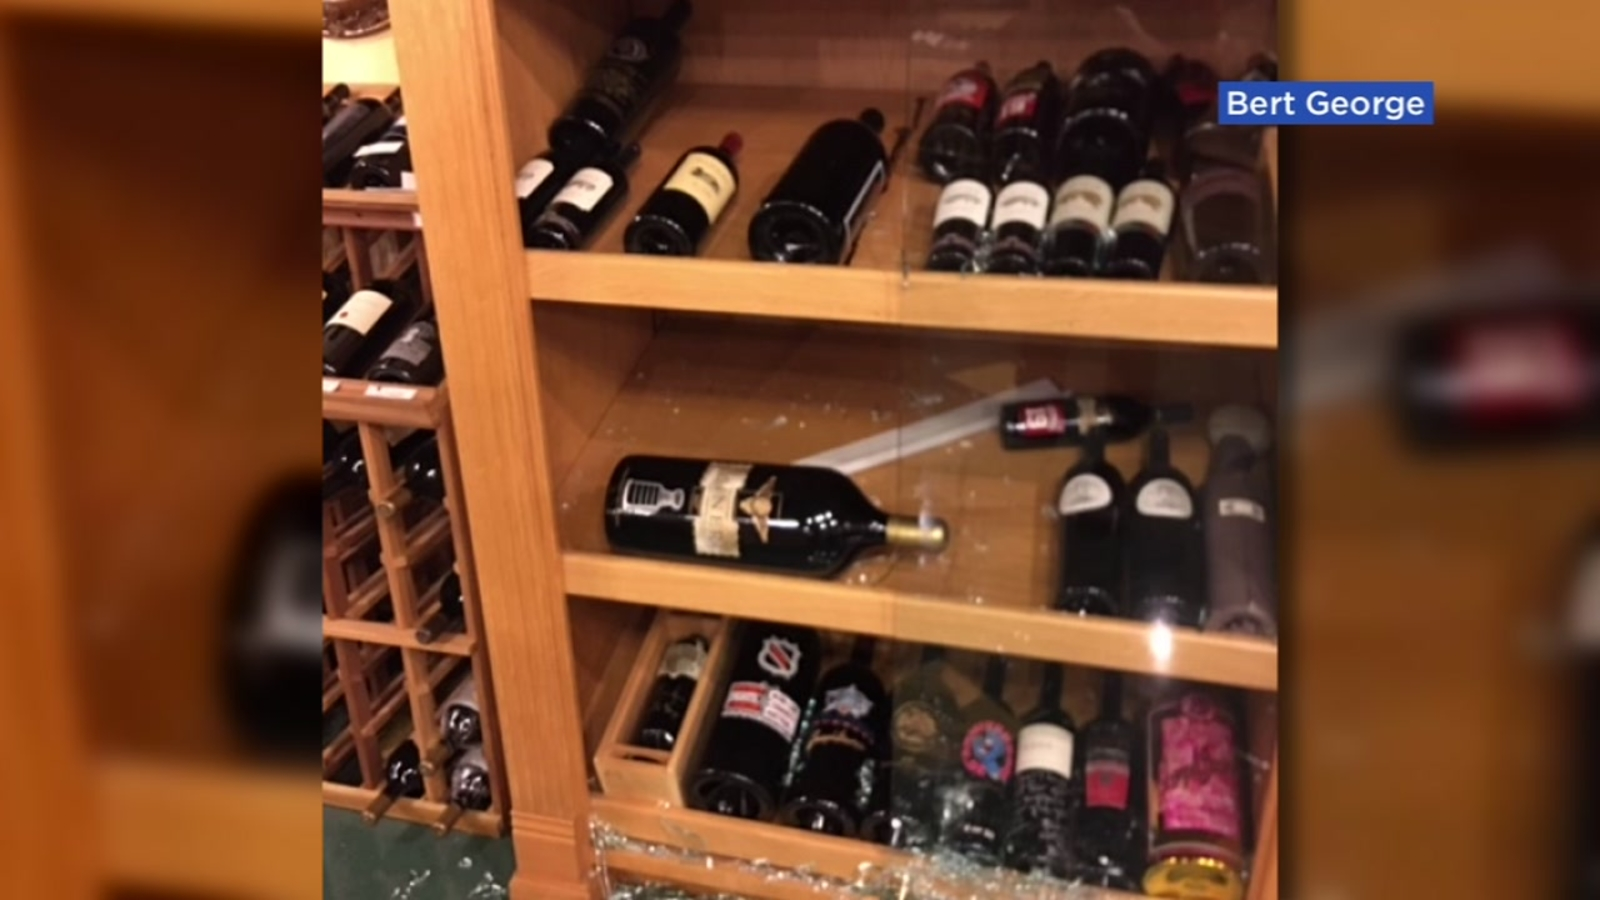 'It's so rare': Bottles of Cabernet Sauvignon stolen from high-end wine shop in South Bay